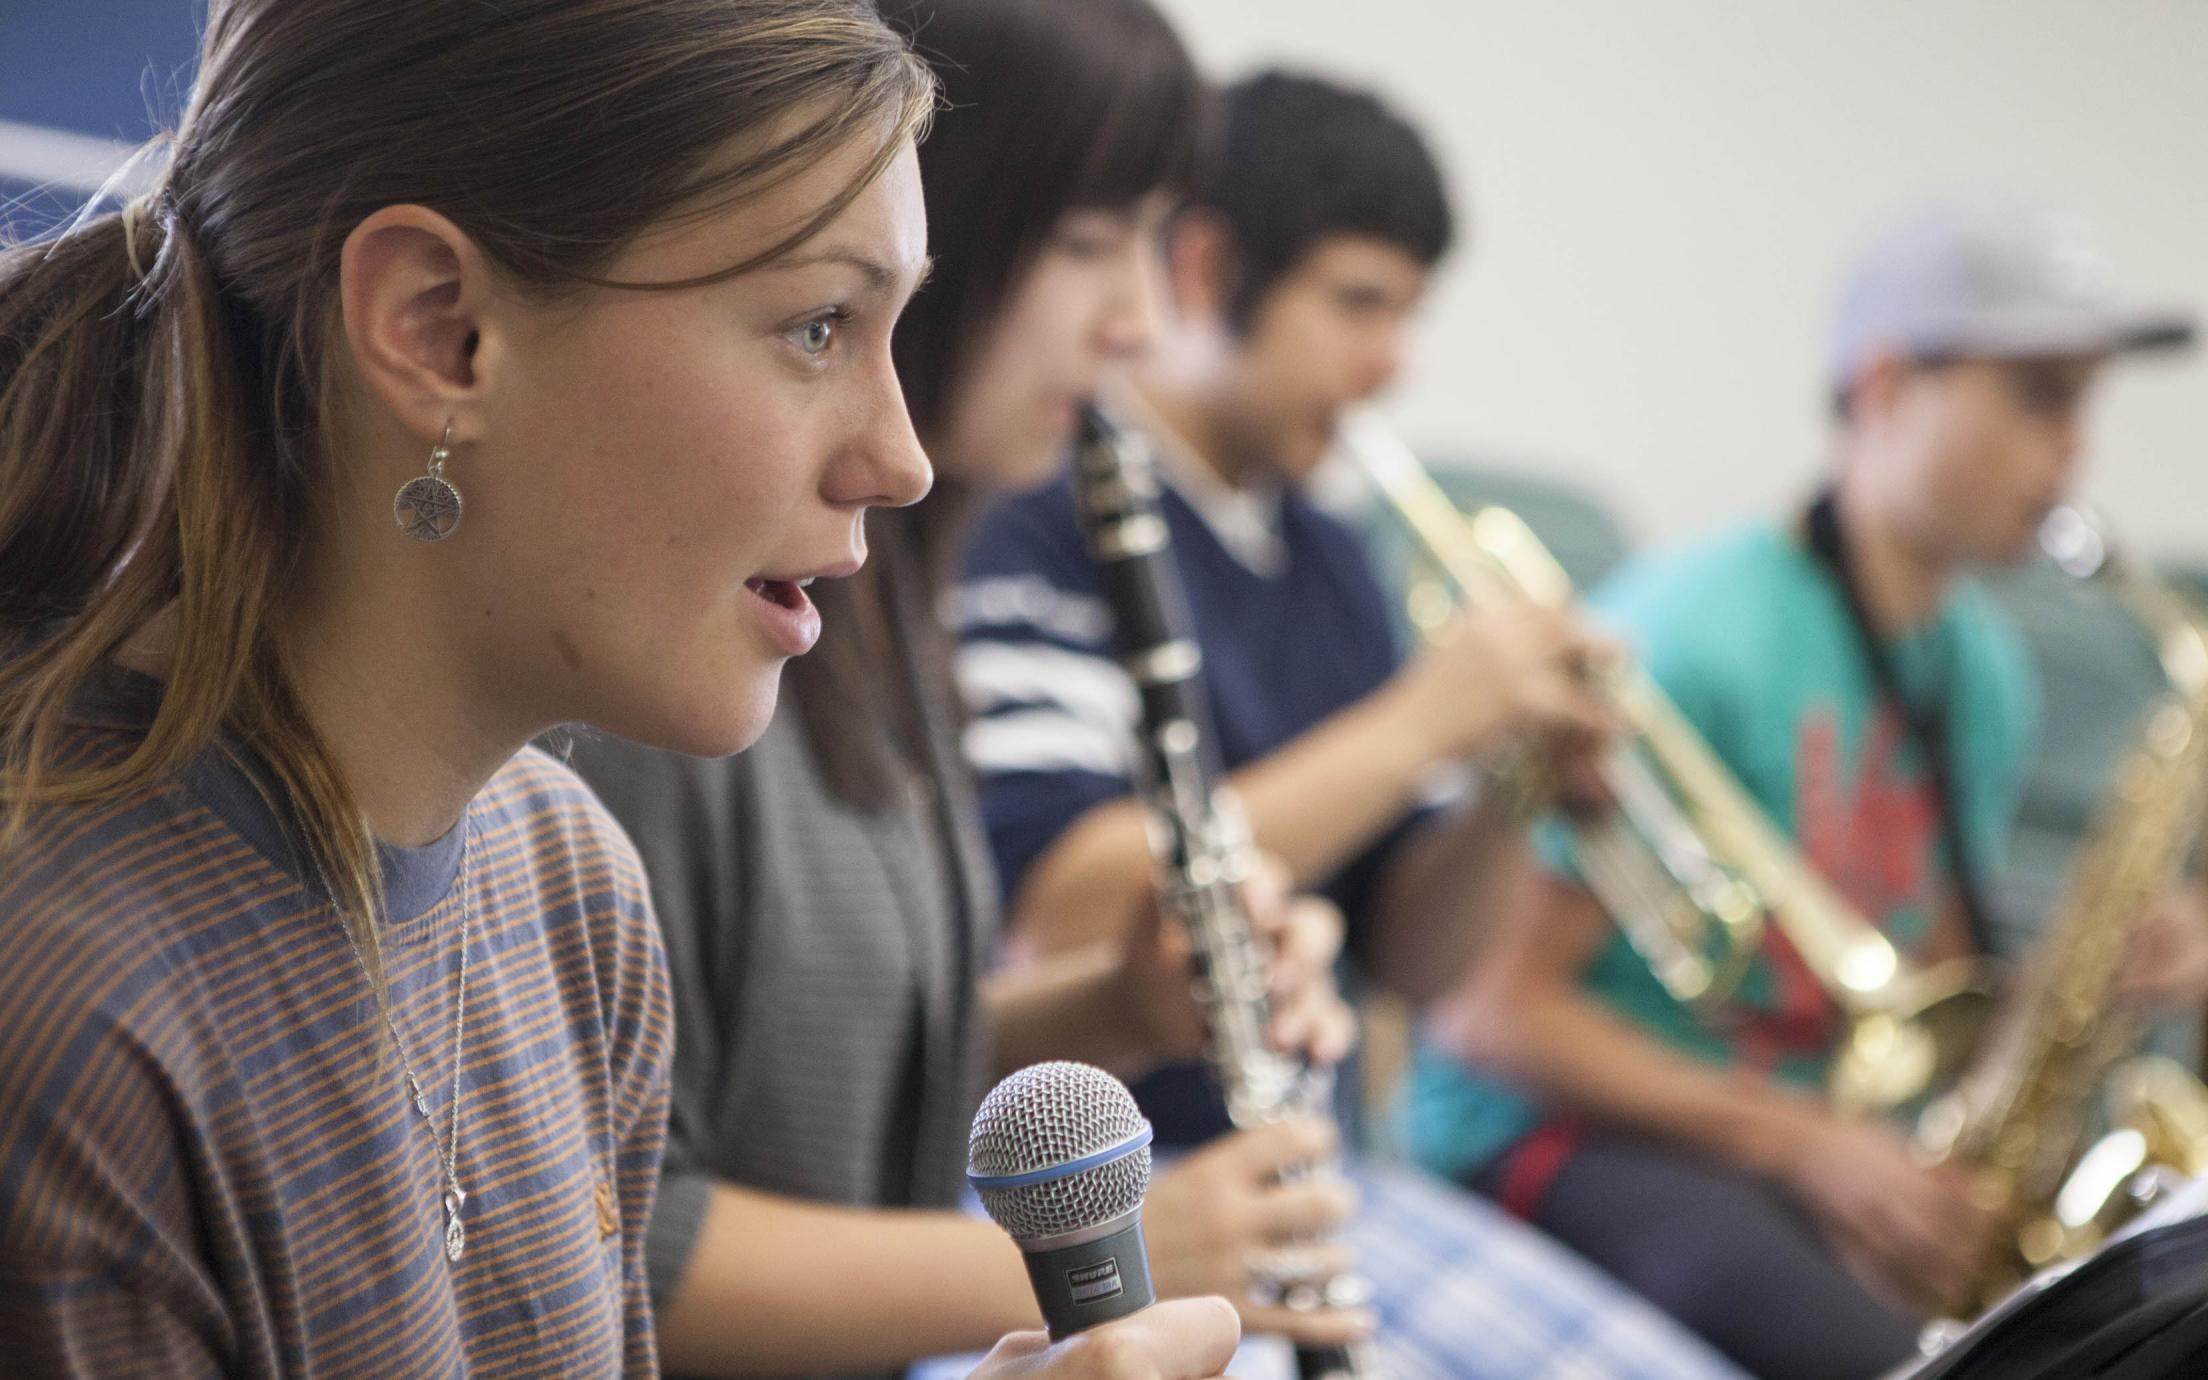 Bachelor of Music in Jazz Studies students playing instruments